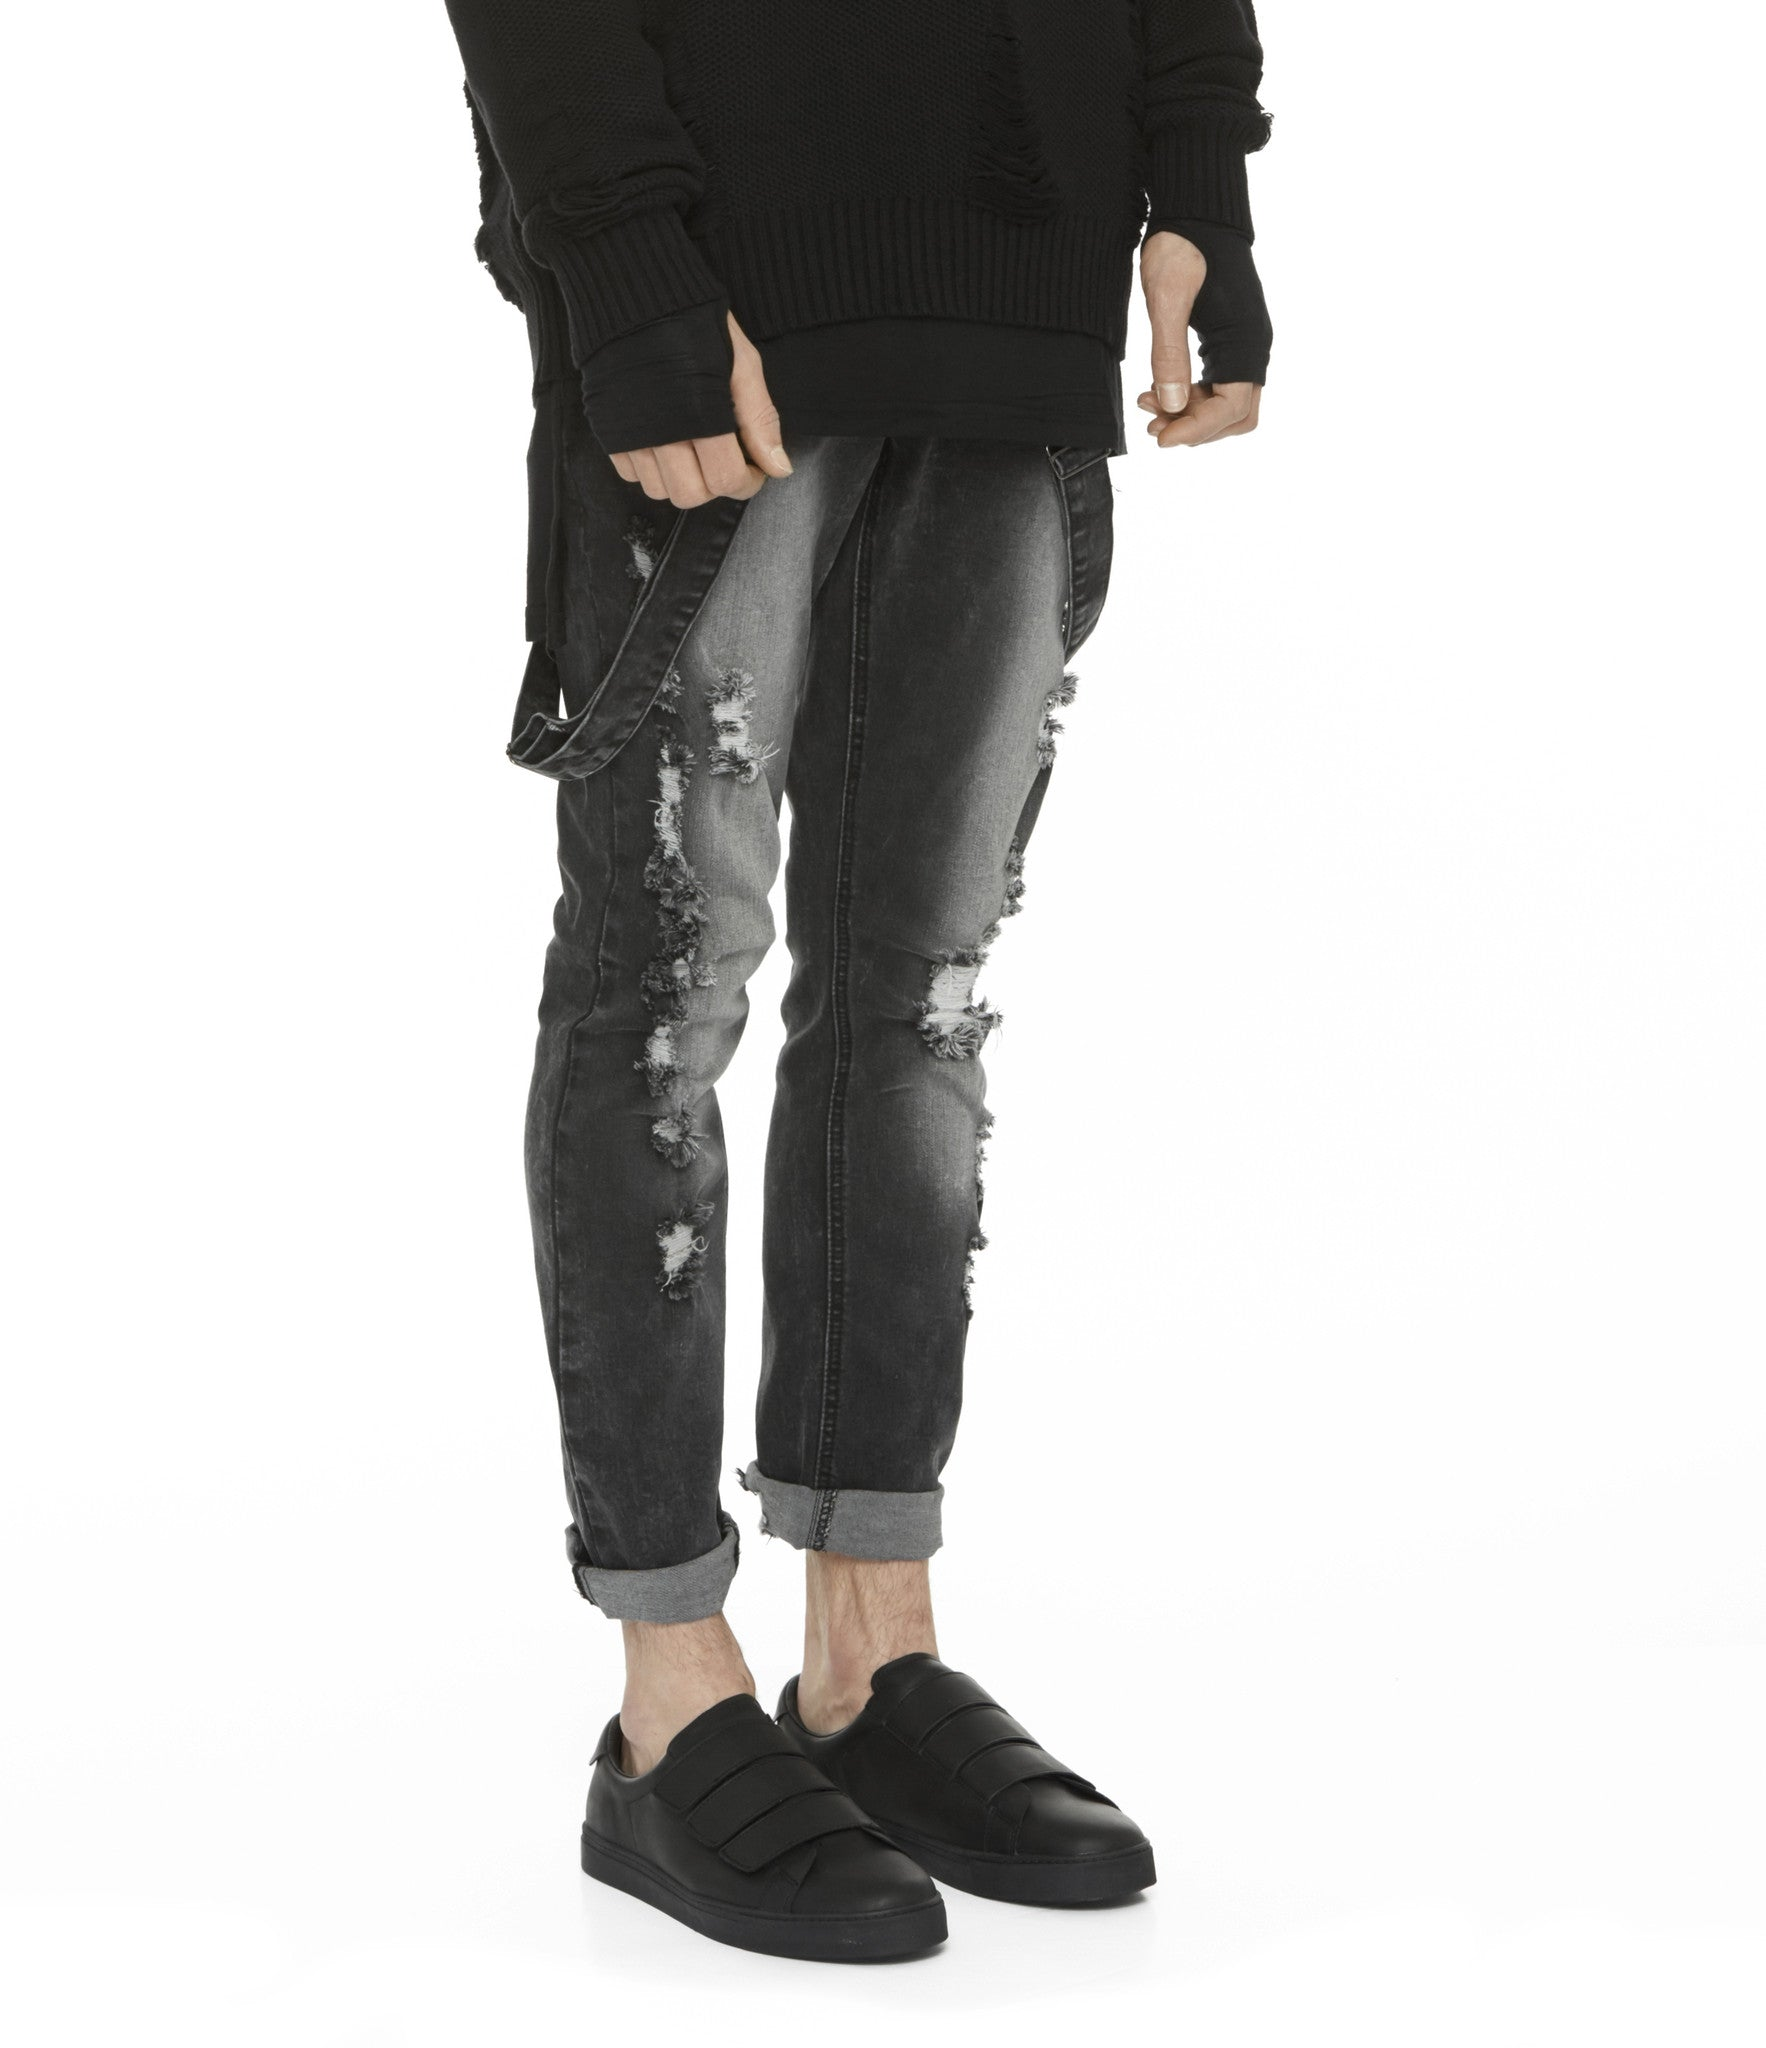 JN181 Distressed Stone Wash Dungaree Denim - Black - underated london - underatedco - 6